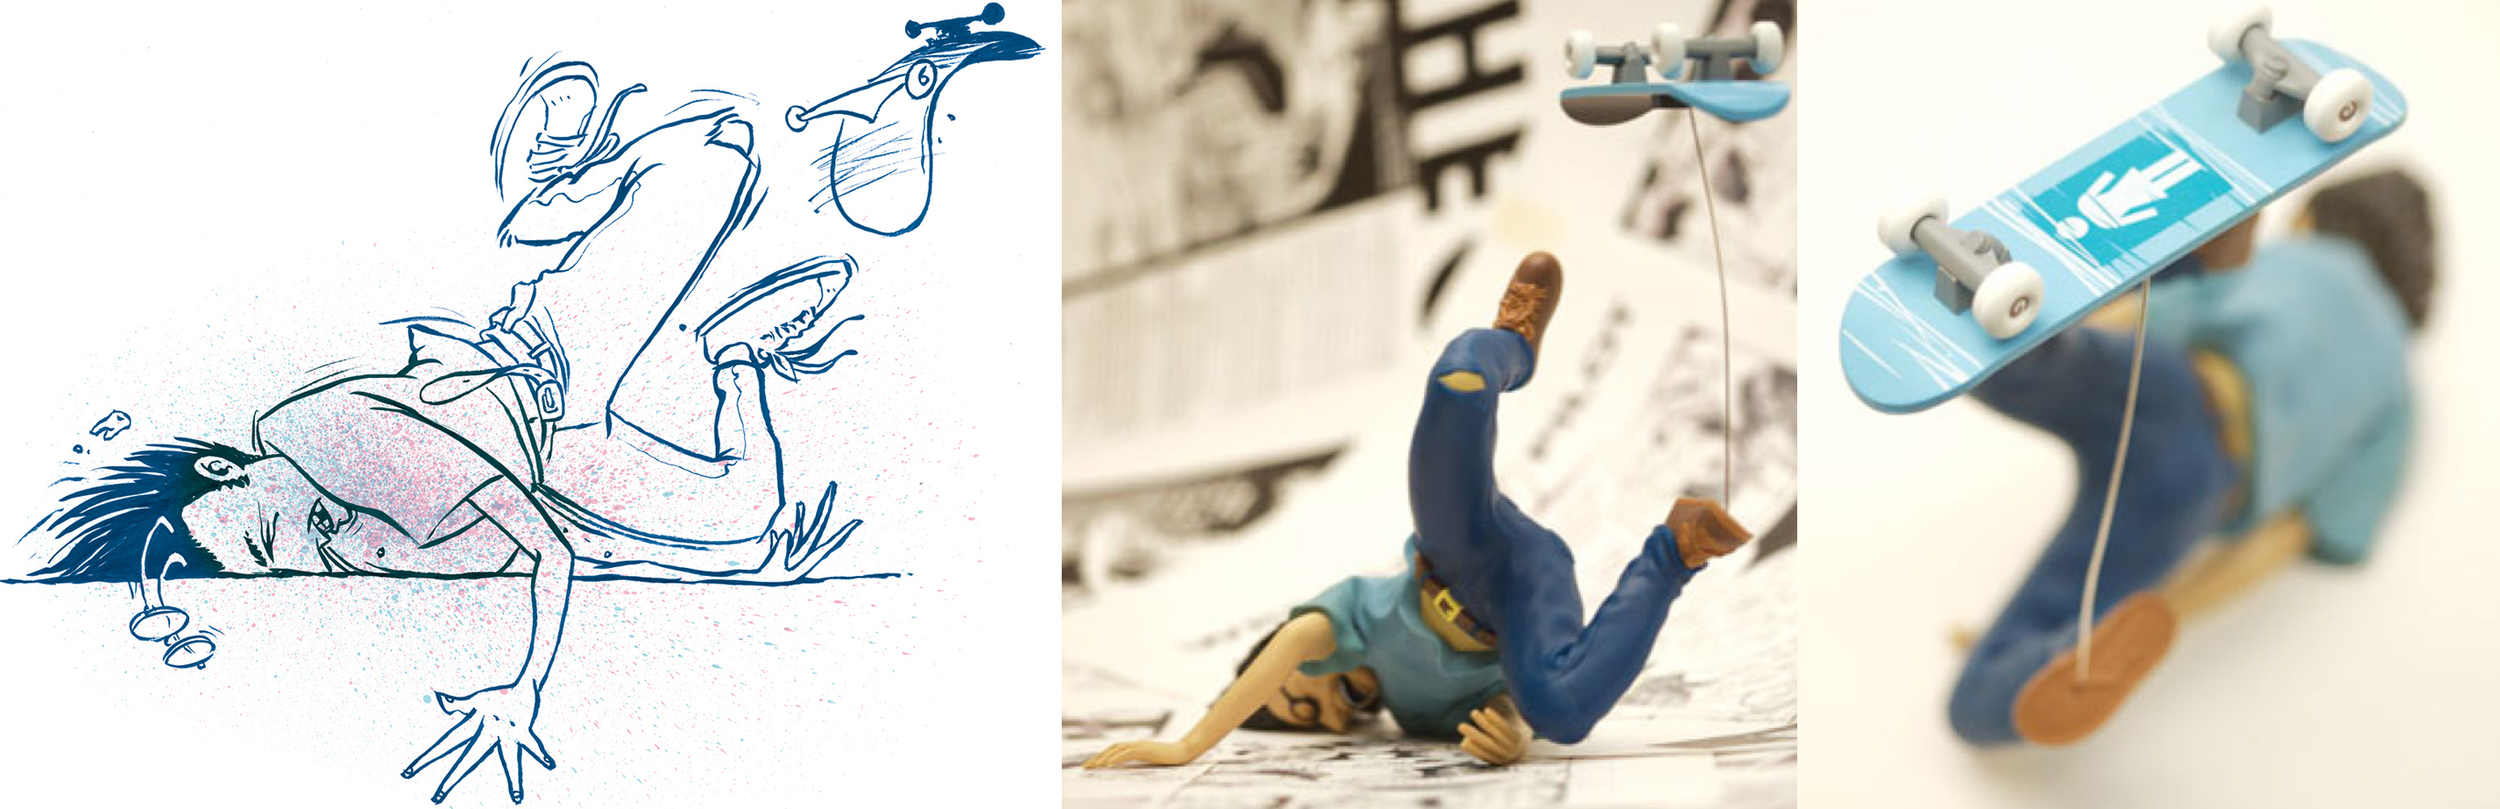 The vinyl figure was based on the ink drawing on the left.